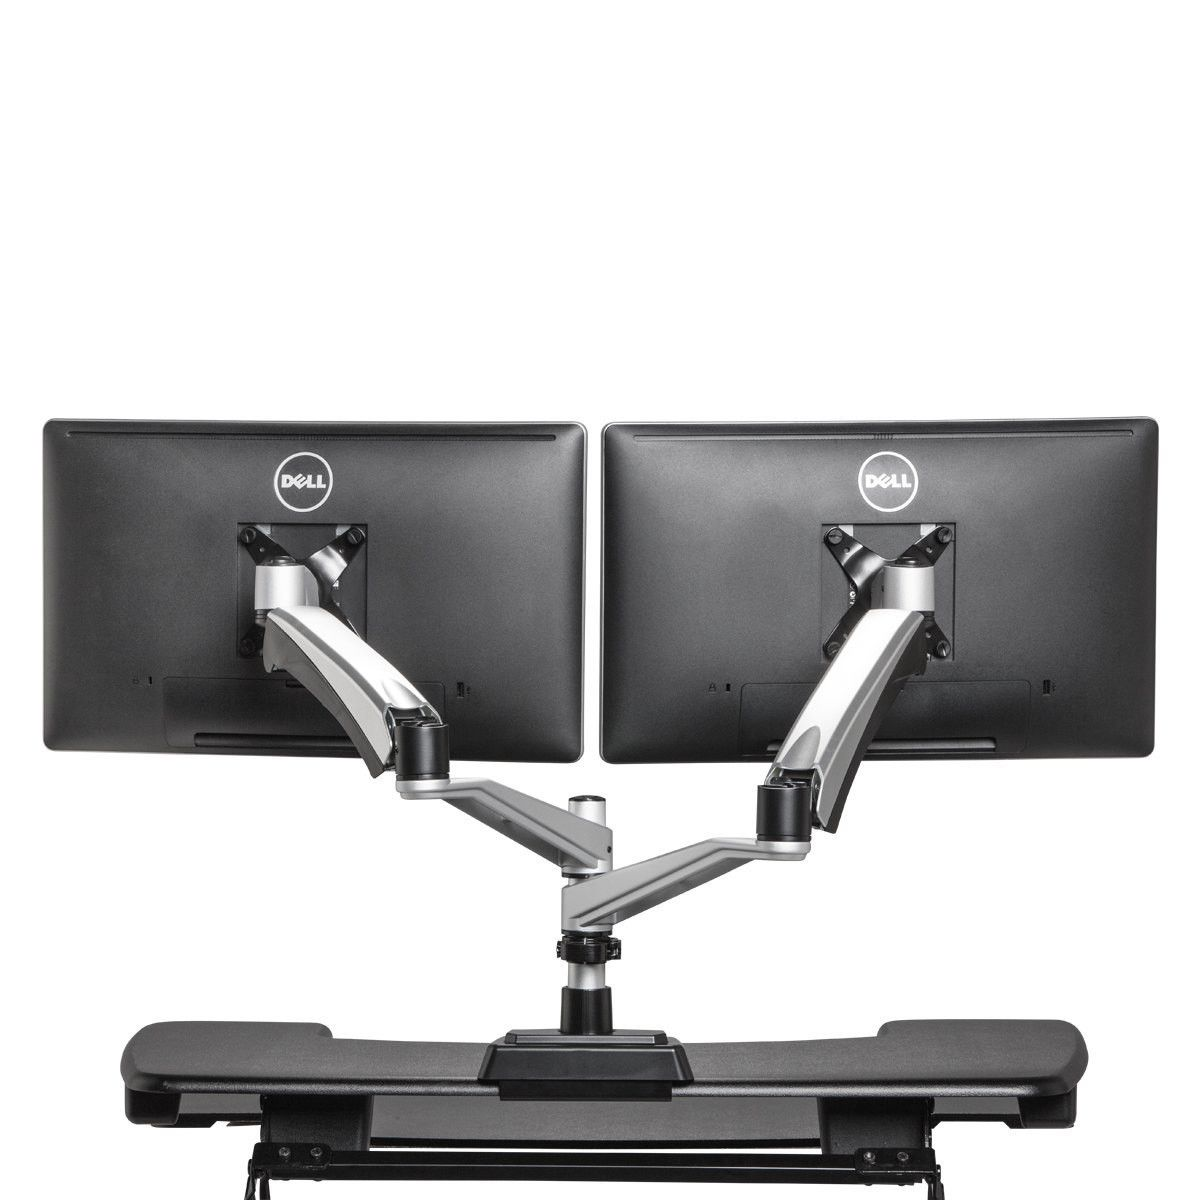 Each Standing Desk Monitor Arm Can Handle Up To 19 8 Lbs